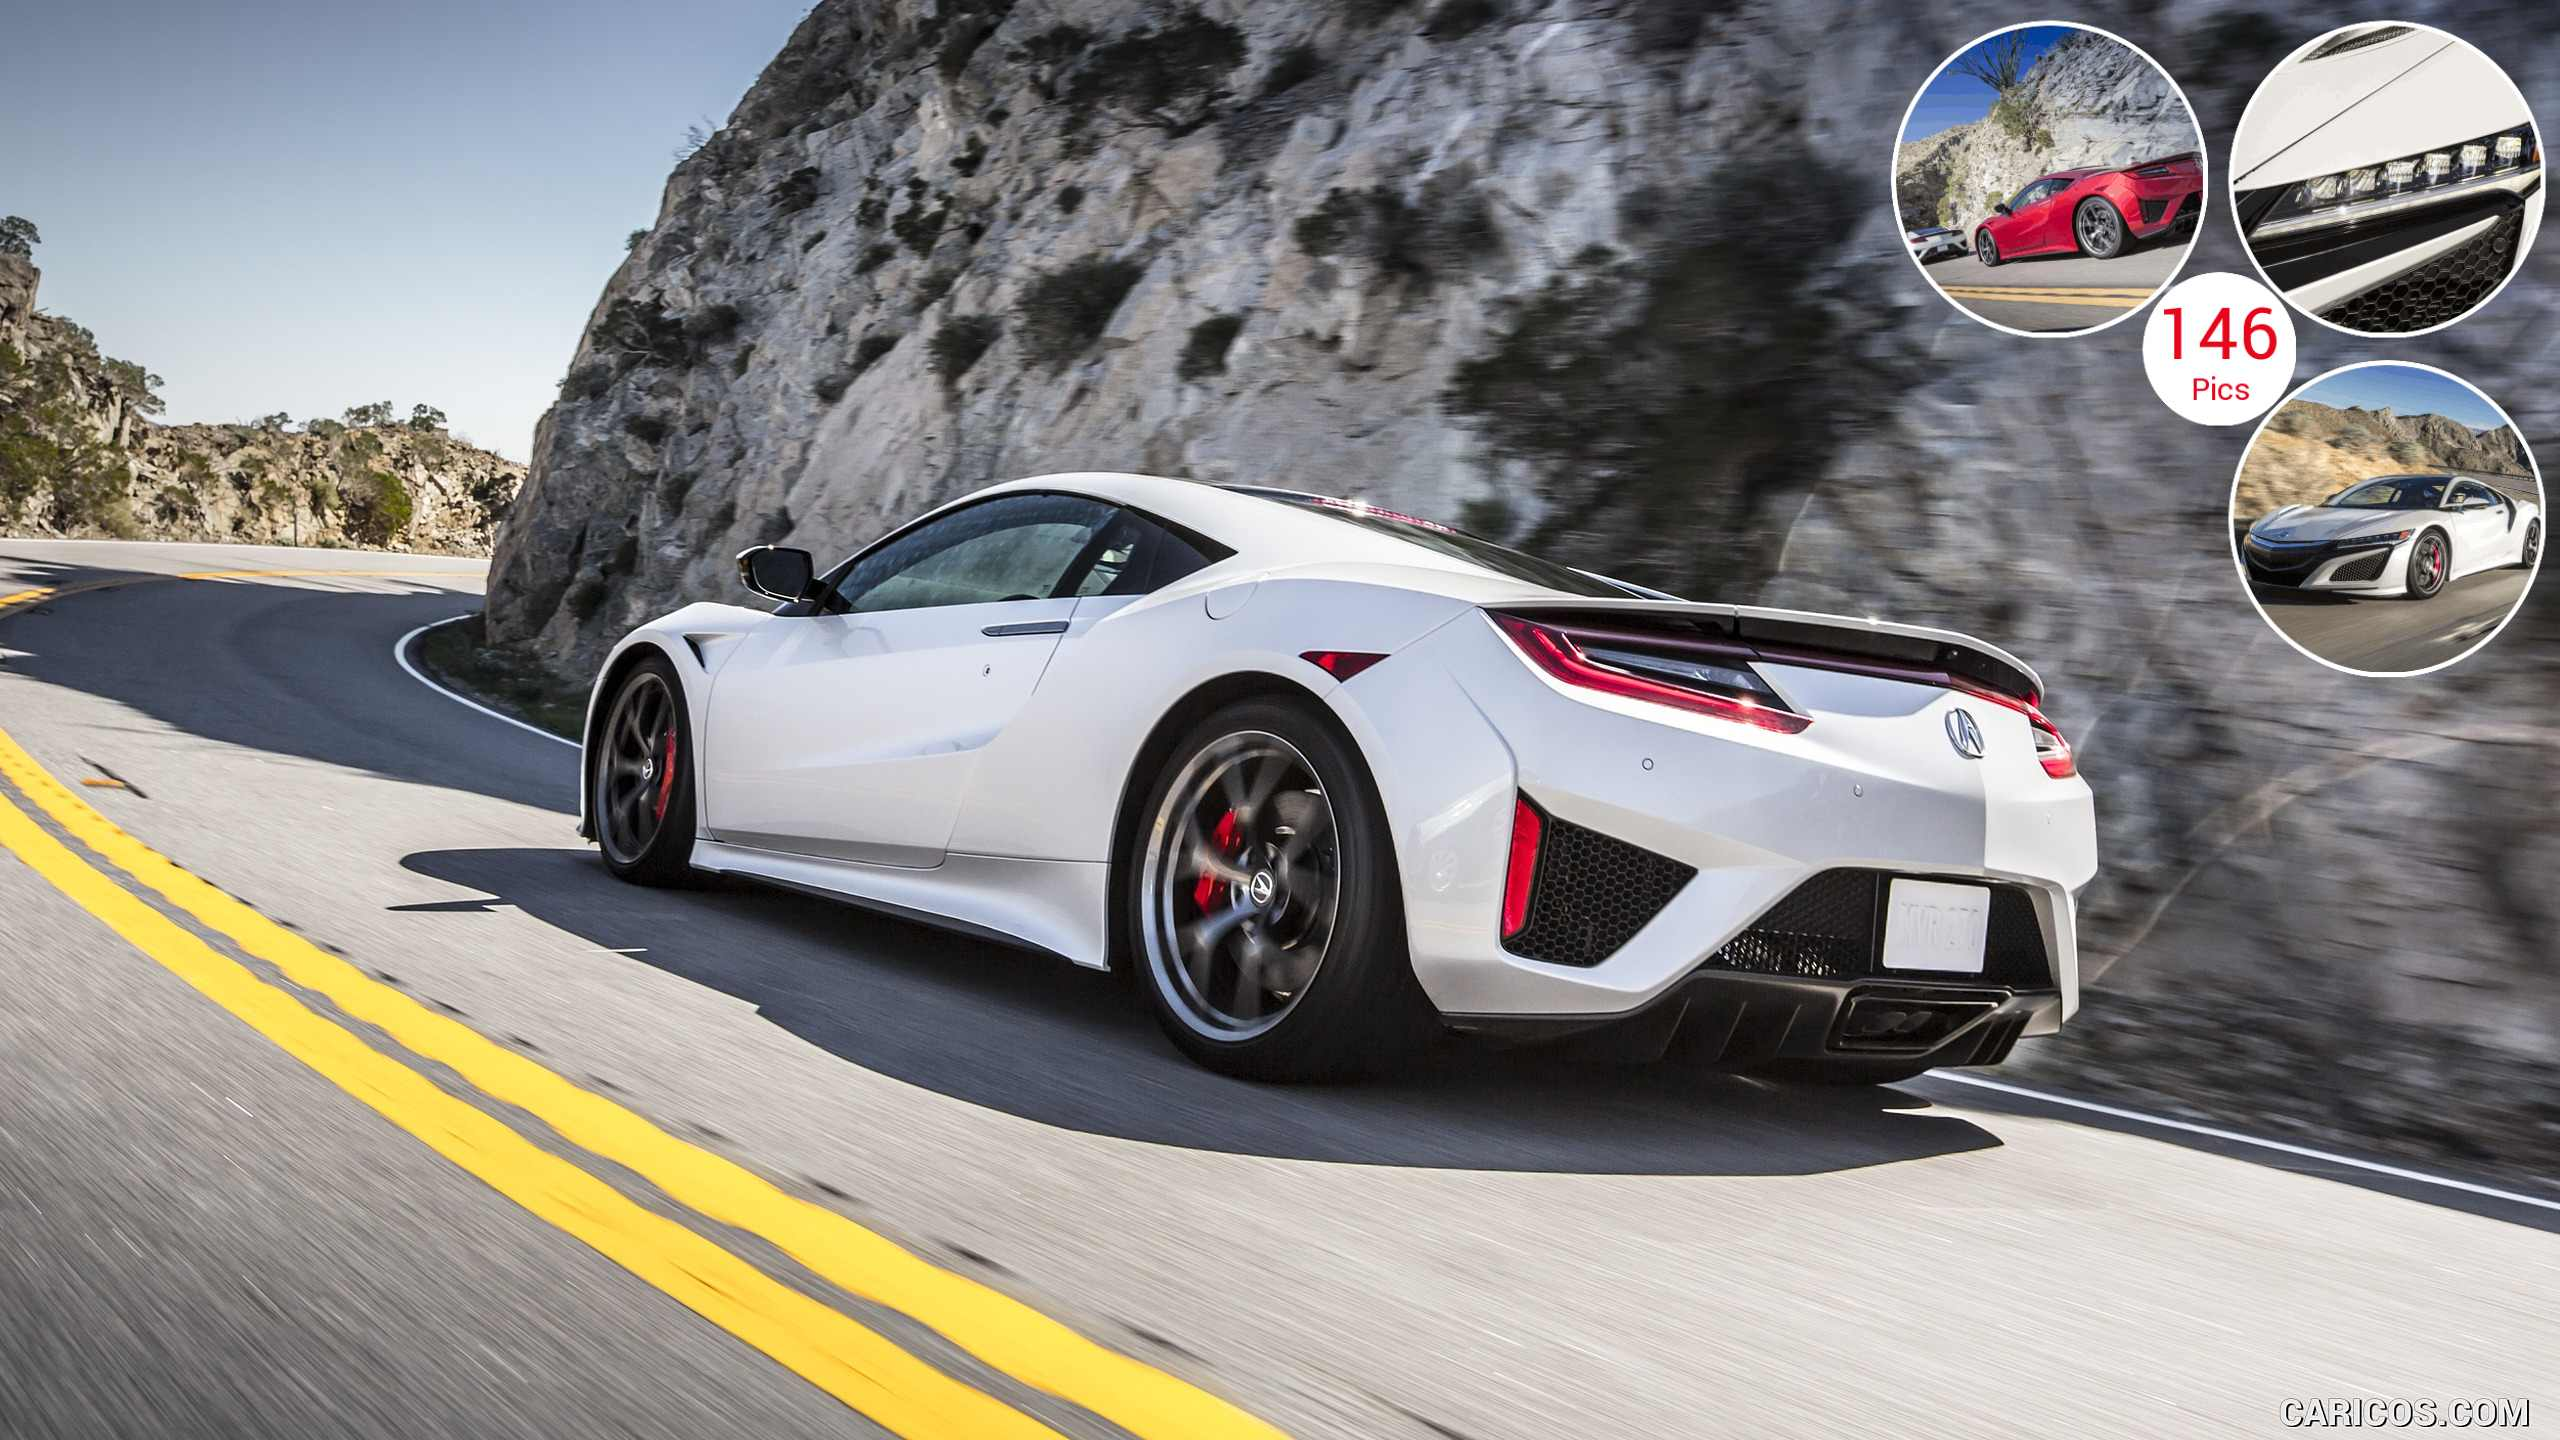 2017 Acura NSX White - Rear | HD Wallpaper #2